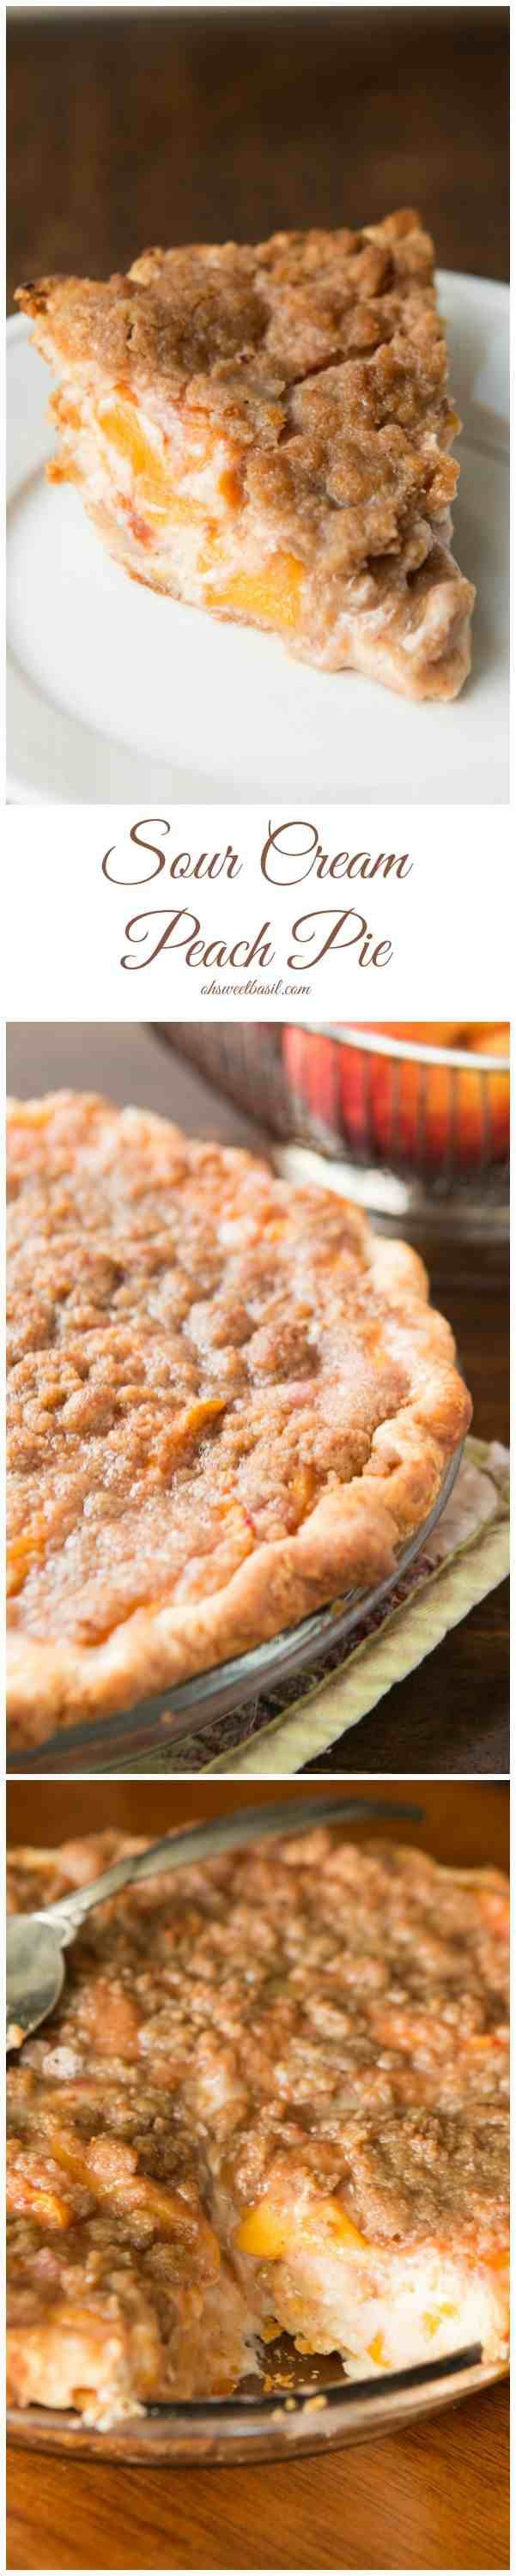 Our favorite pie! Sour cream peach pie with this awesome brown sugar crumble topping!! ohsweetbasil.com